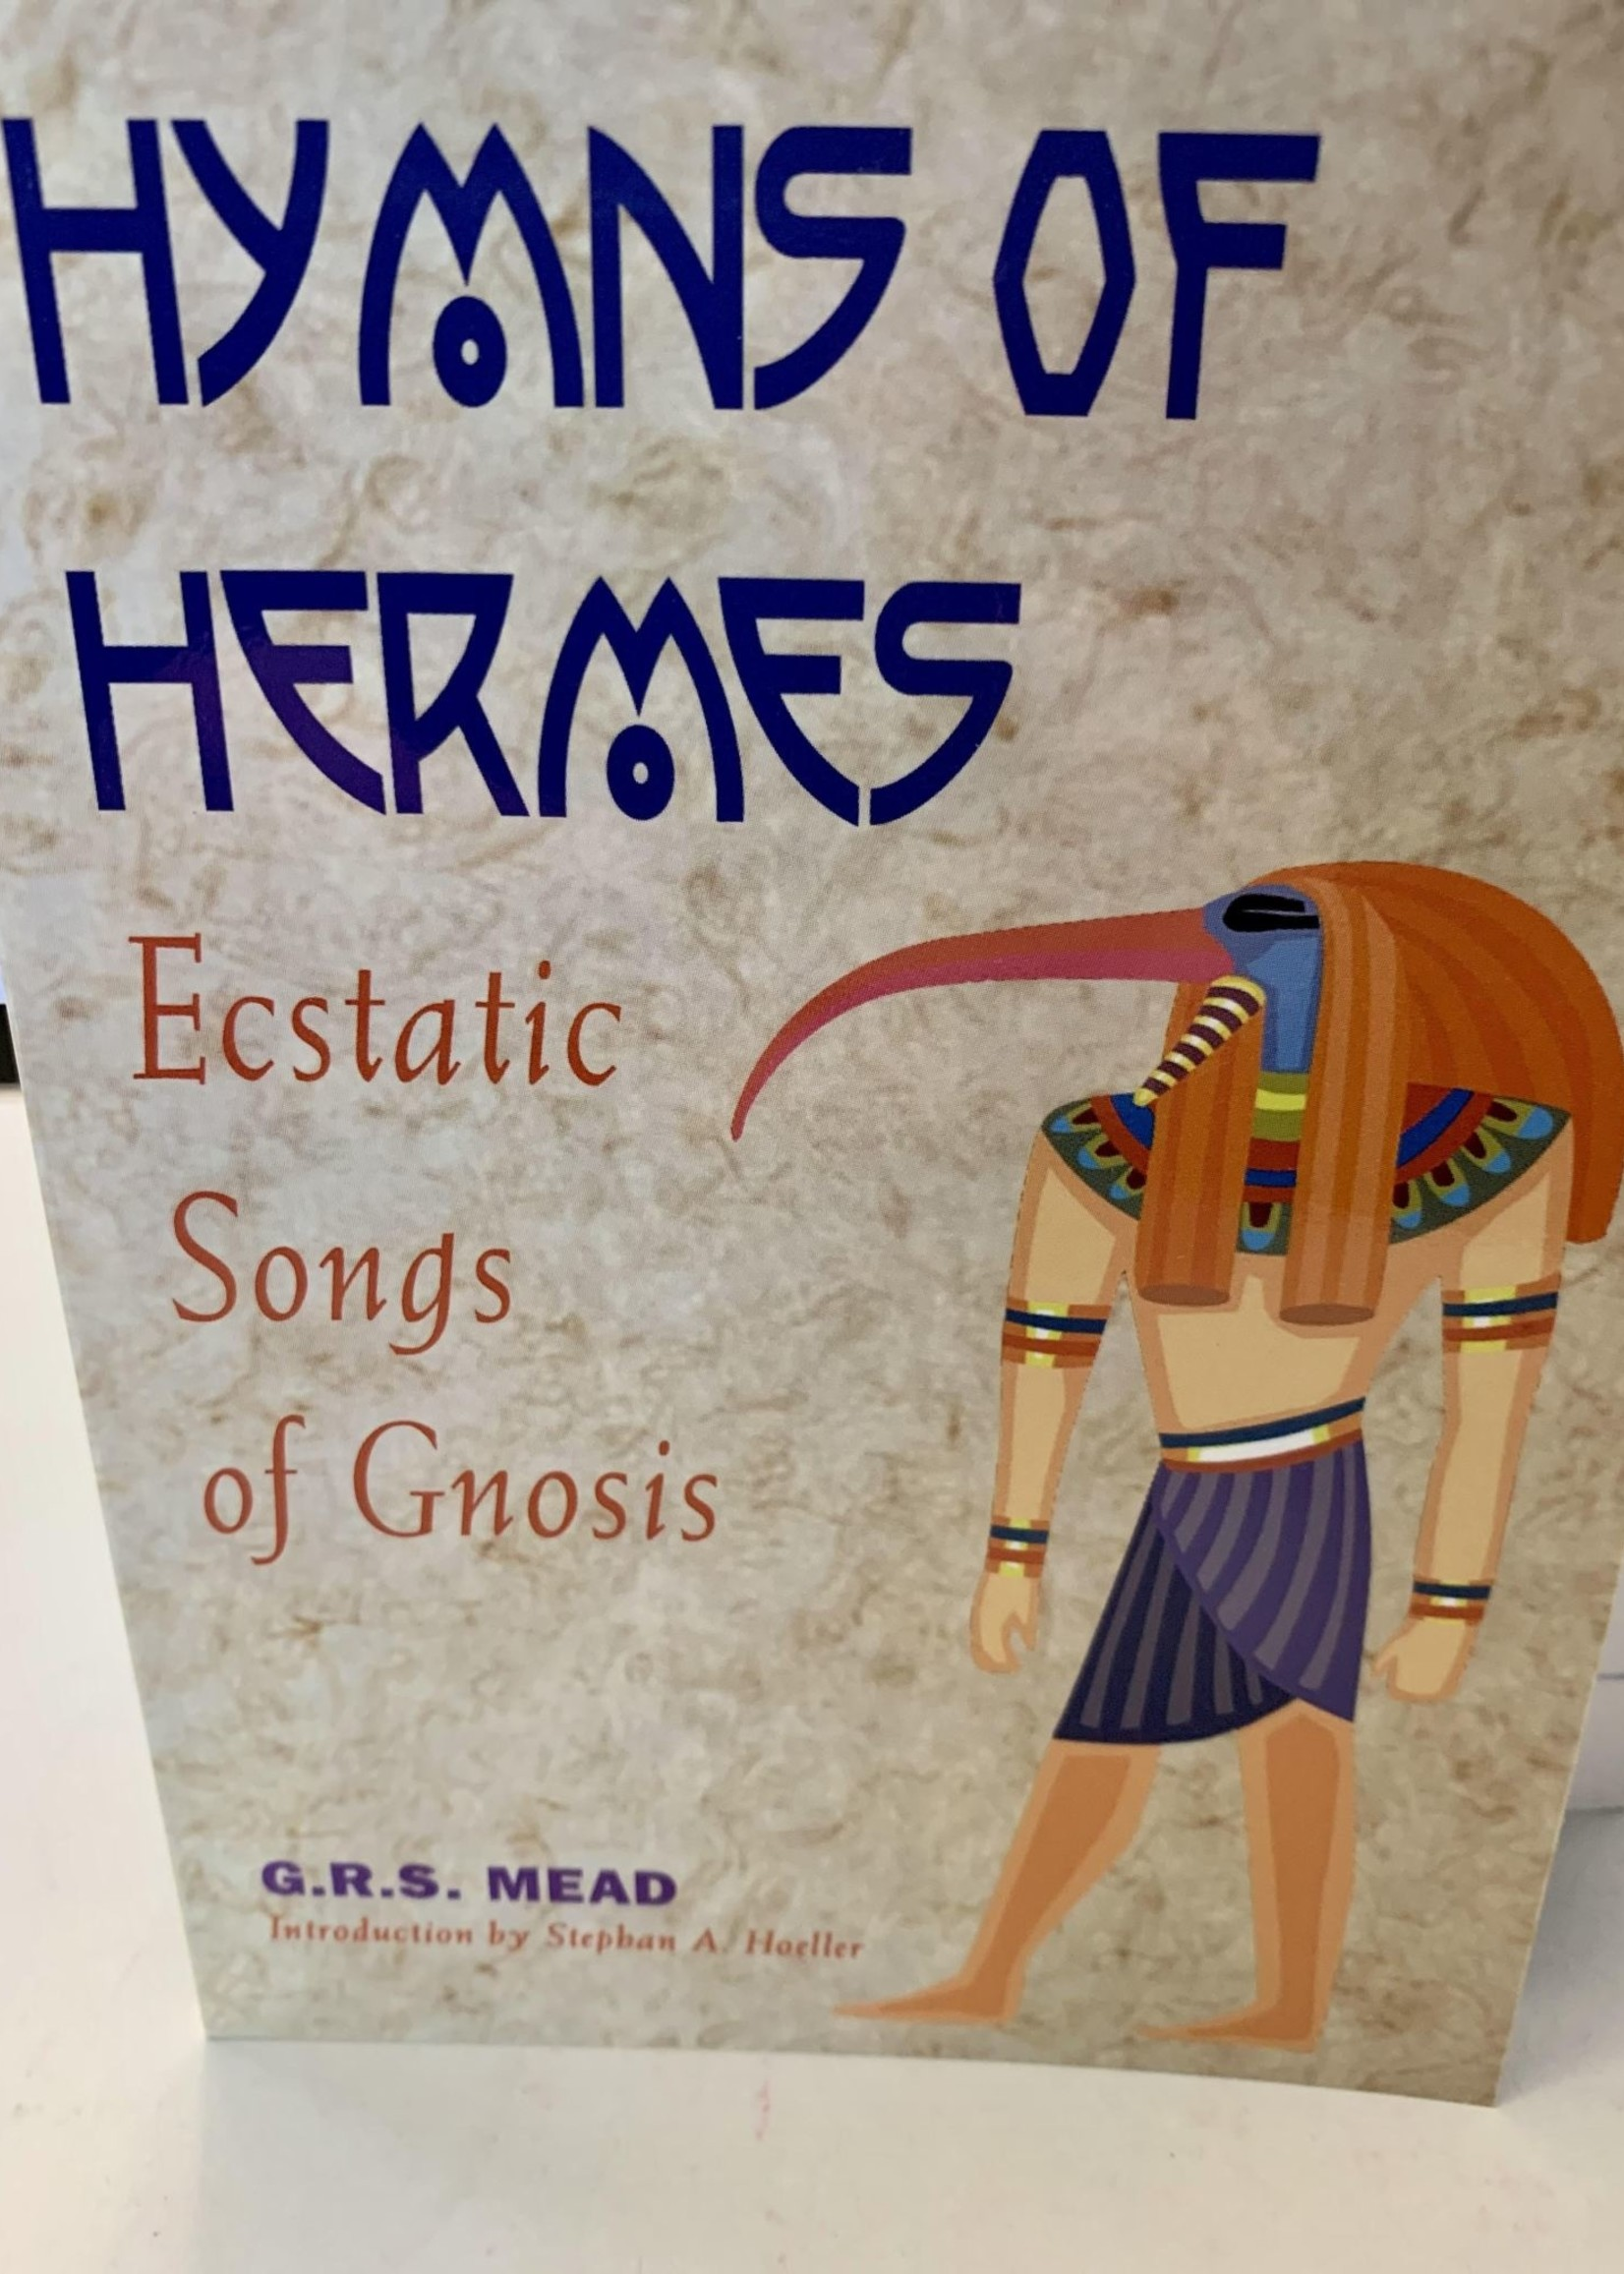 The Hymns of Hermes - Ecstatic Songs of Gnosis - GRS Mead